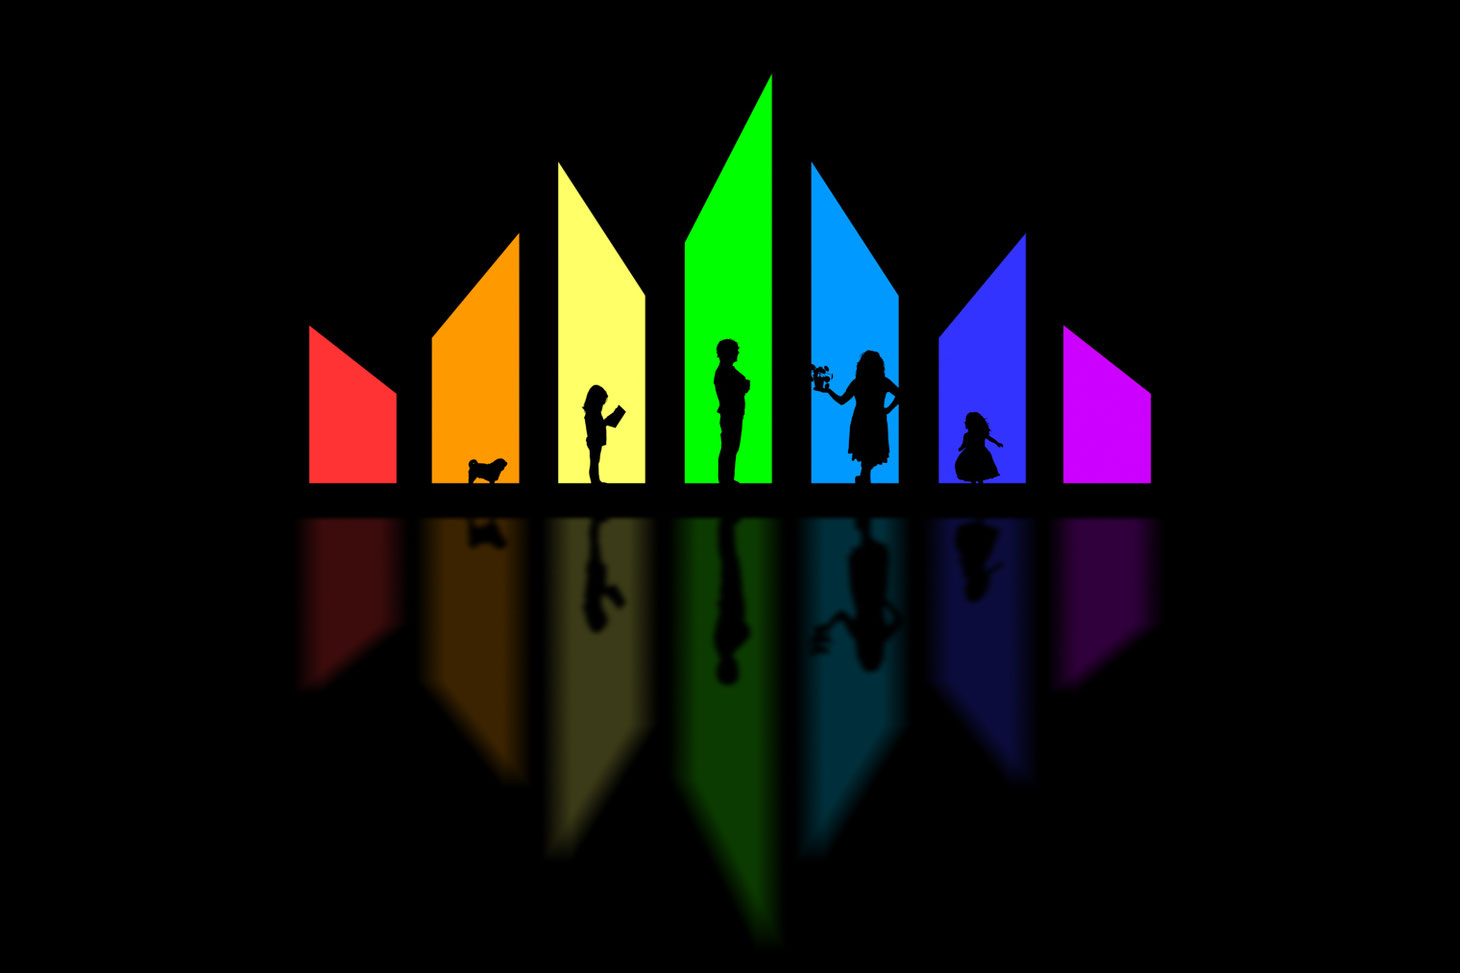 silhouettes of 2 parents, 2 kids, and one dog in rainbow coloured stained glass windows. Their reflections are on the floor.